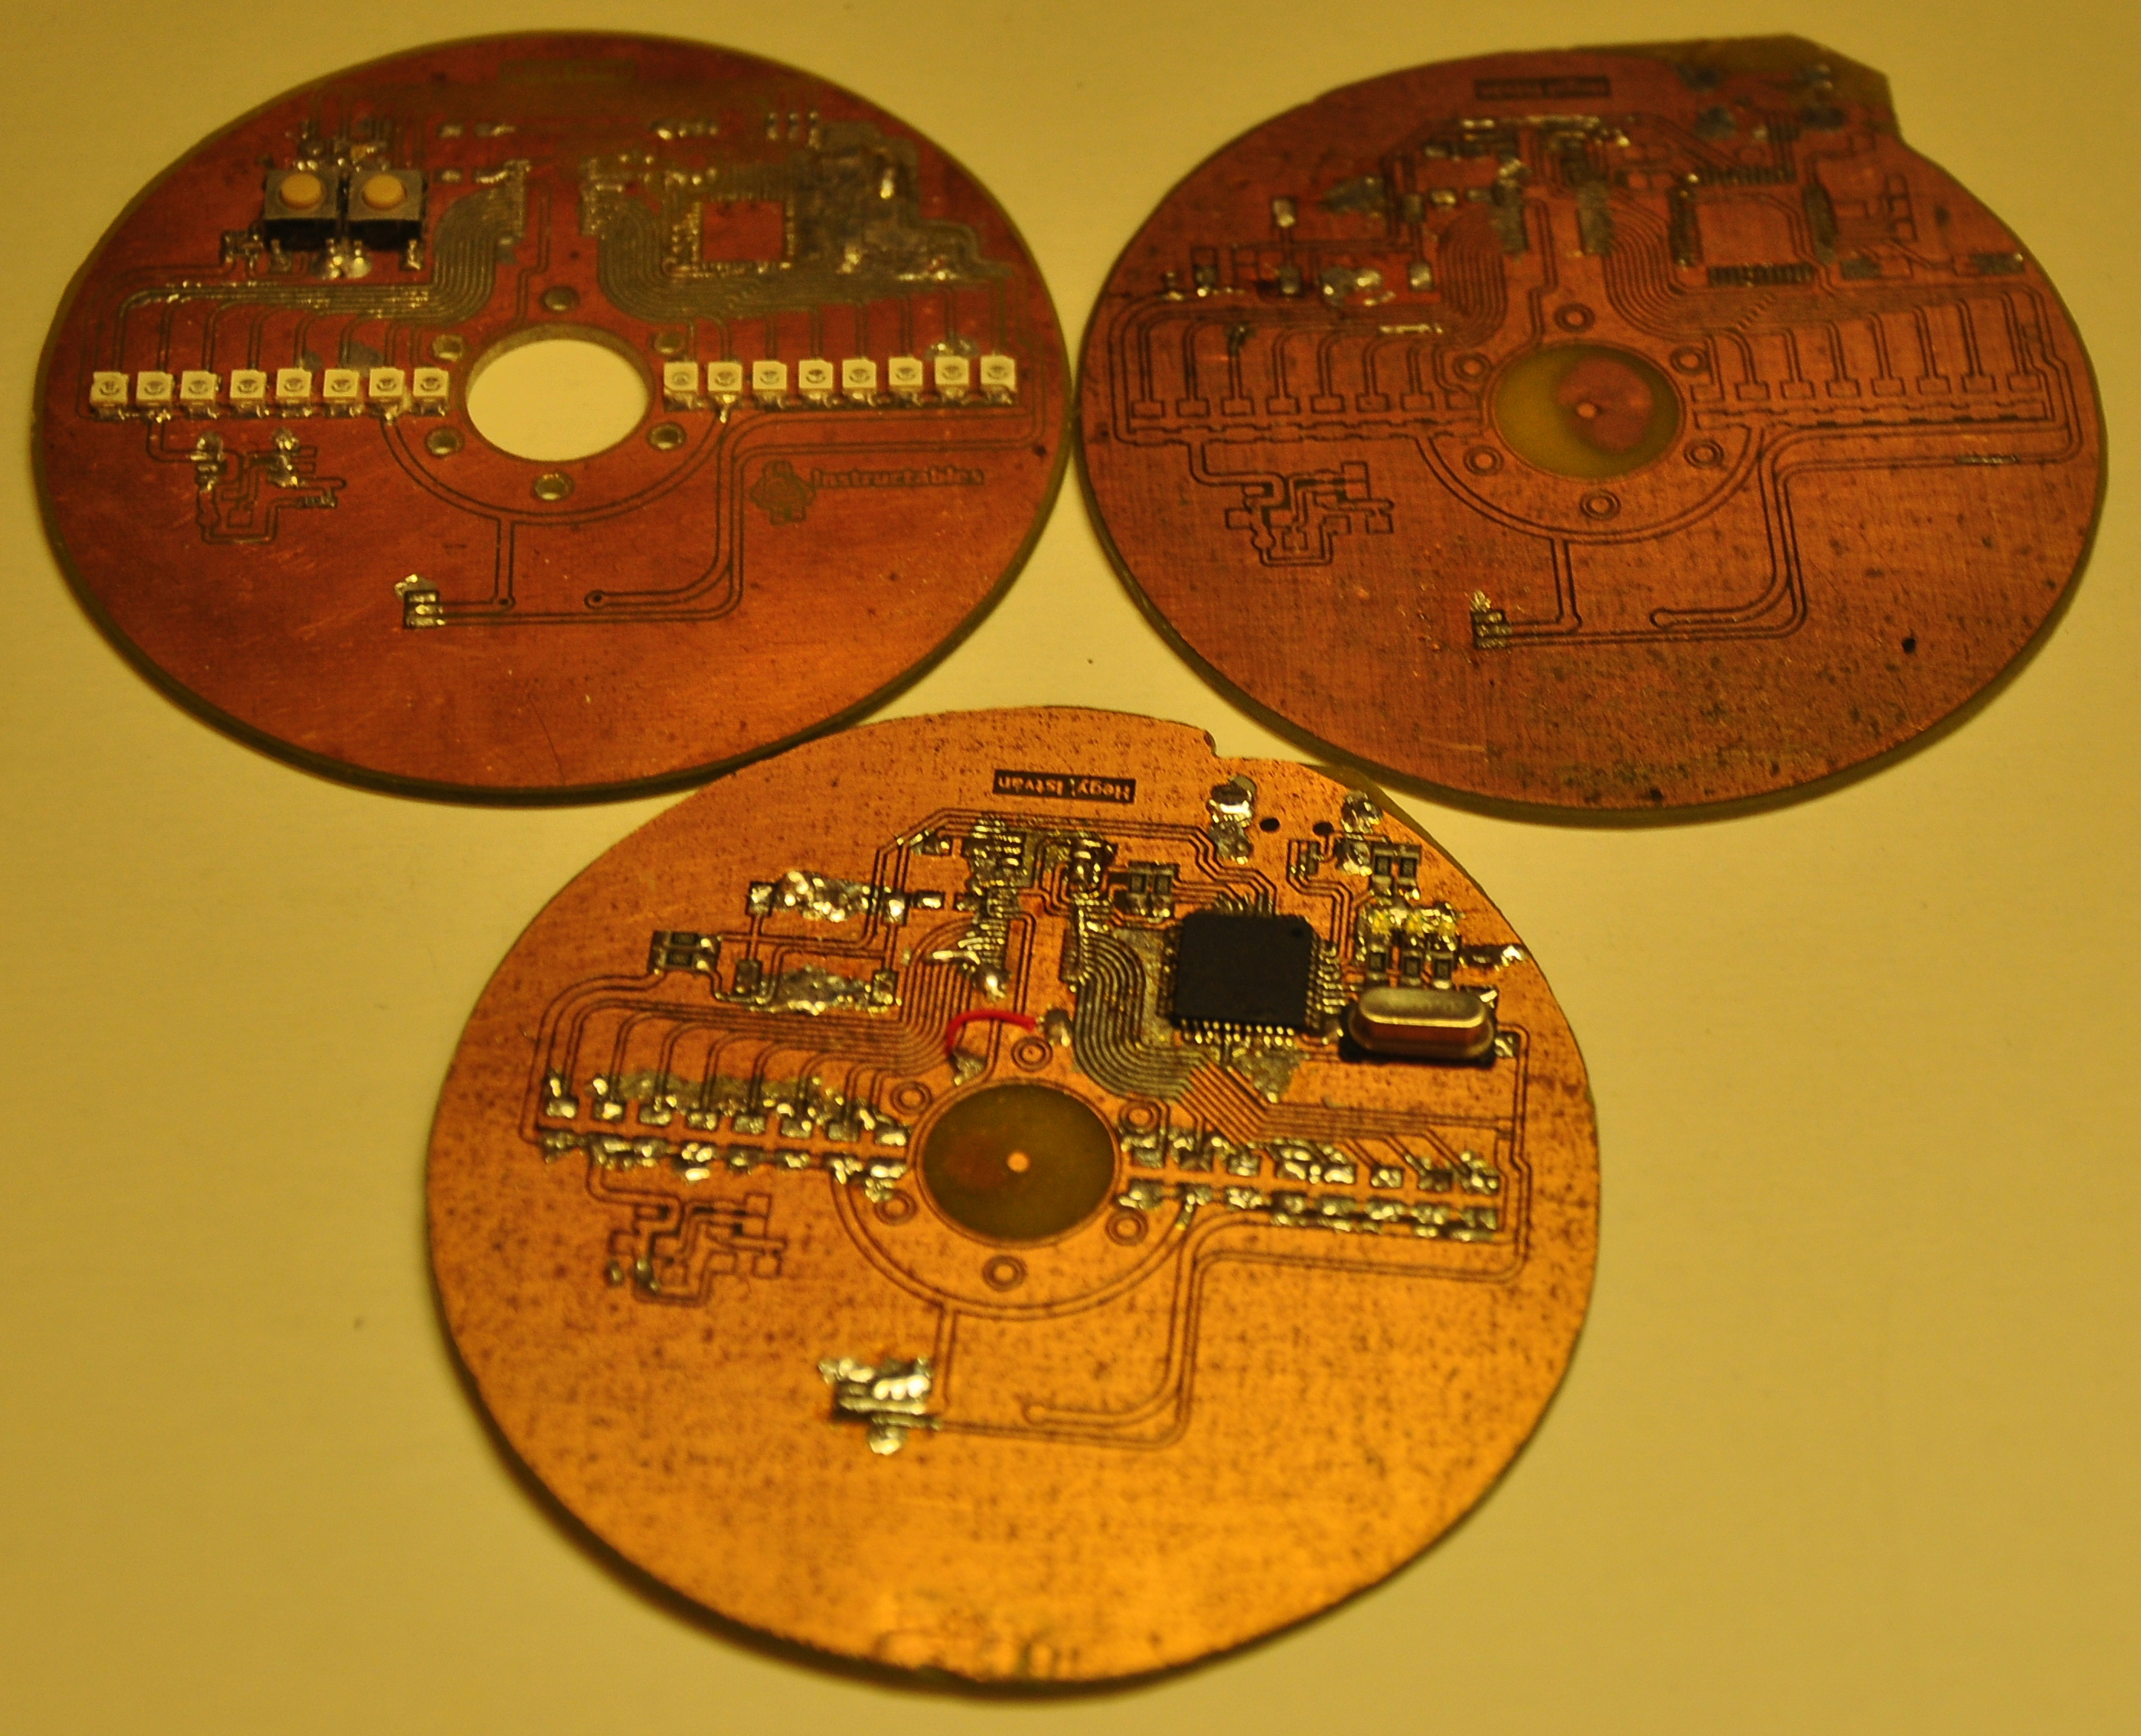 Picture of Starting Up the Upper Board, Communication With the Peripherals